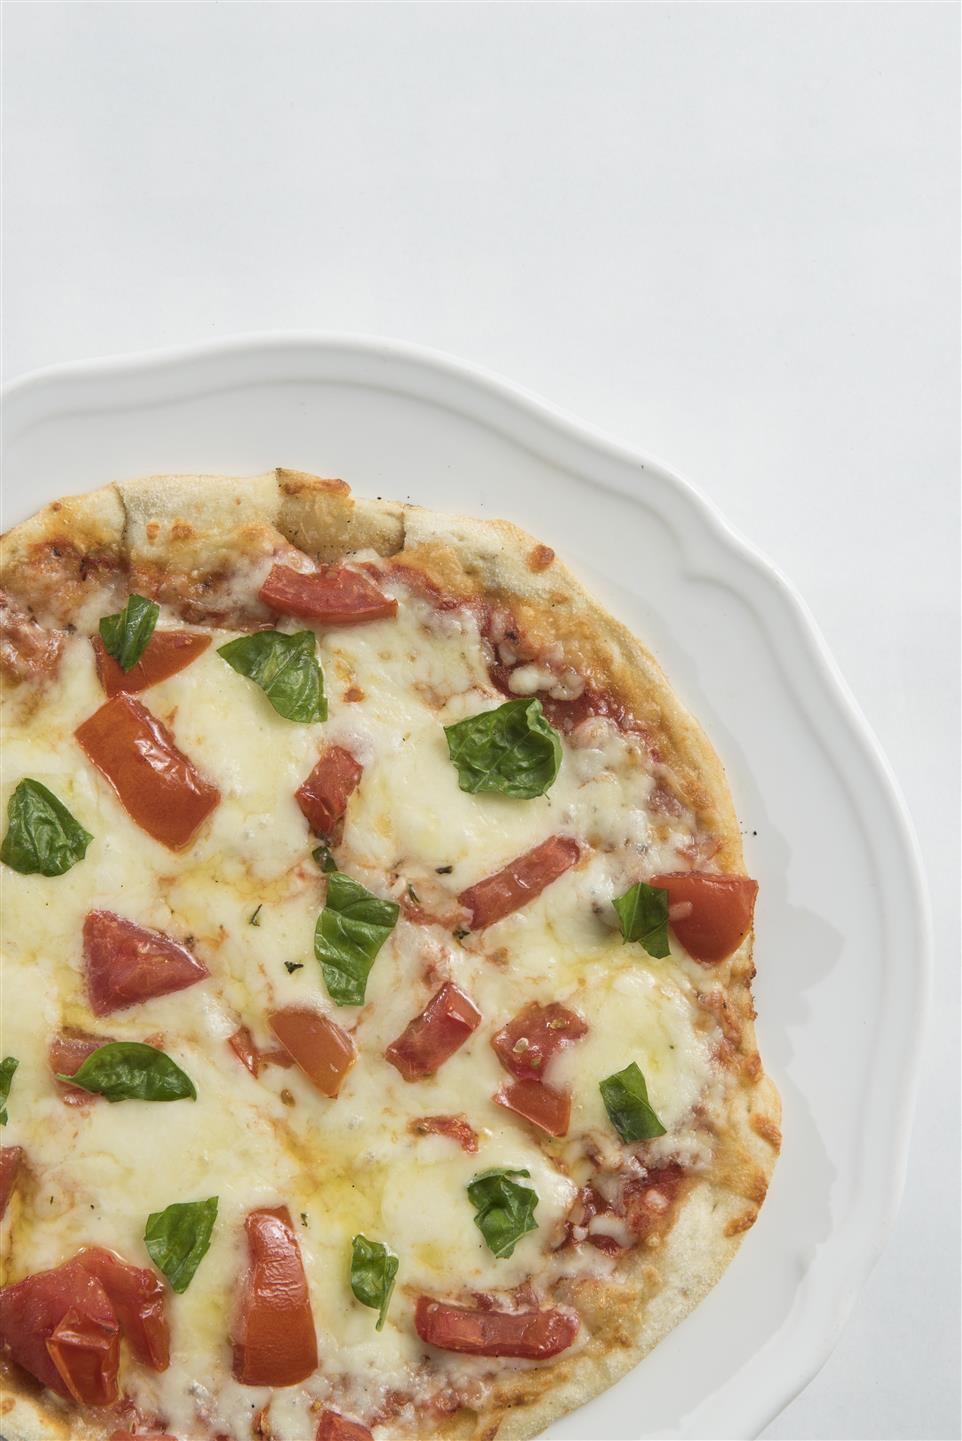 Cheese pizza topped with tomtoes and fresh basil